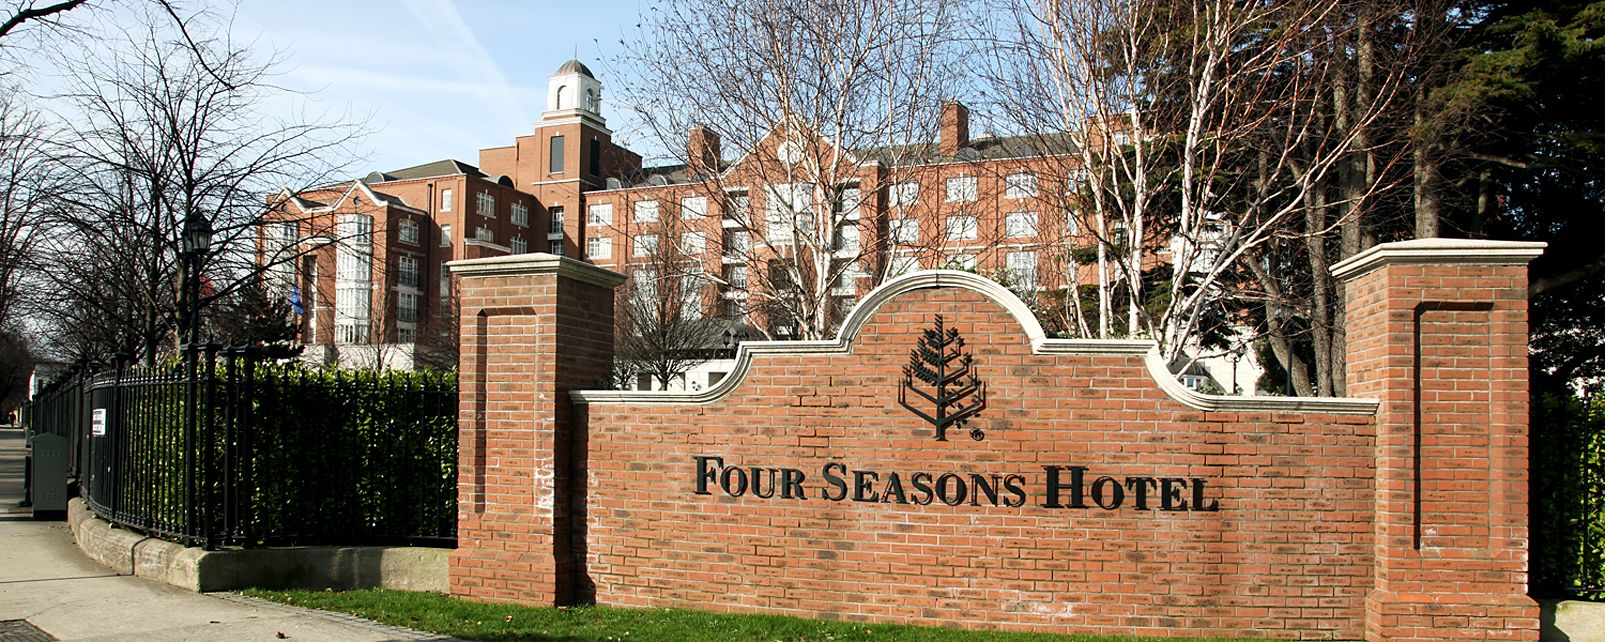 Hôtel Four Seasons Dublin